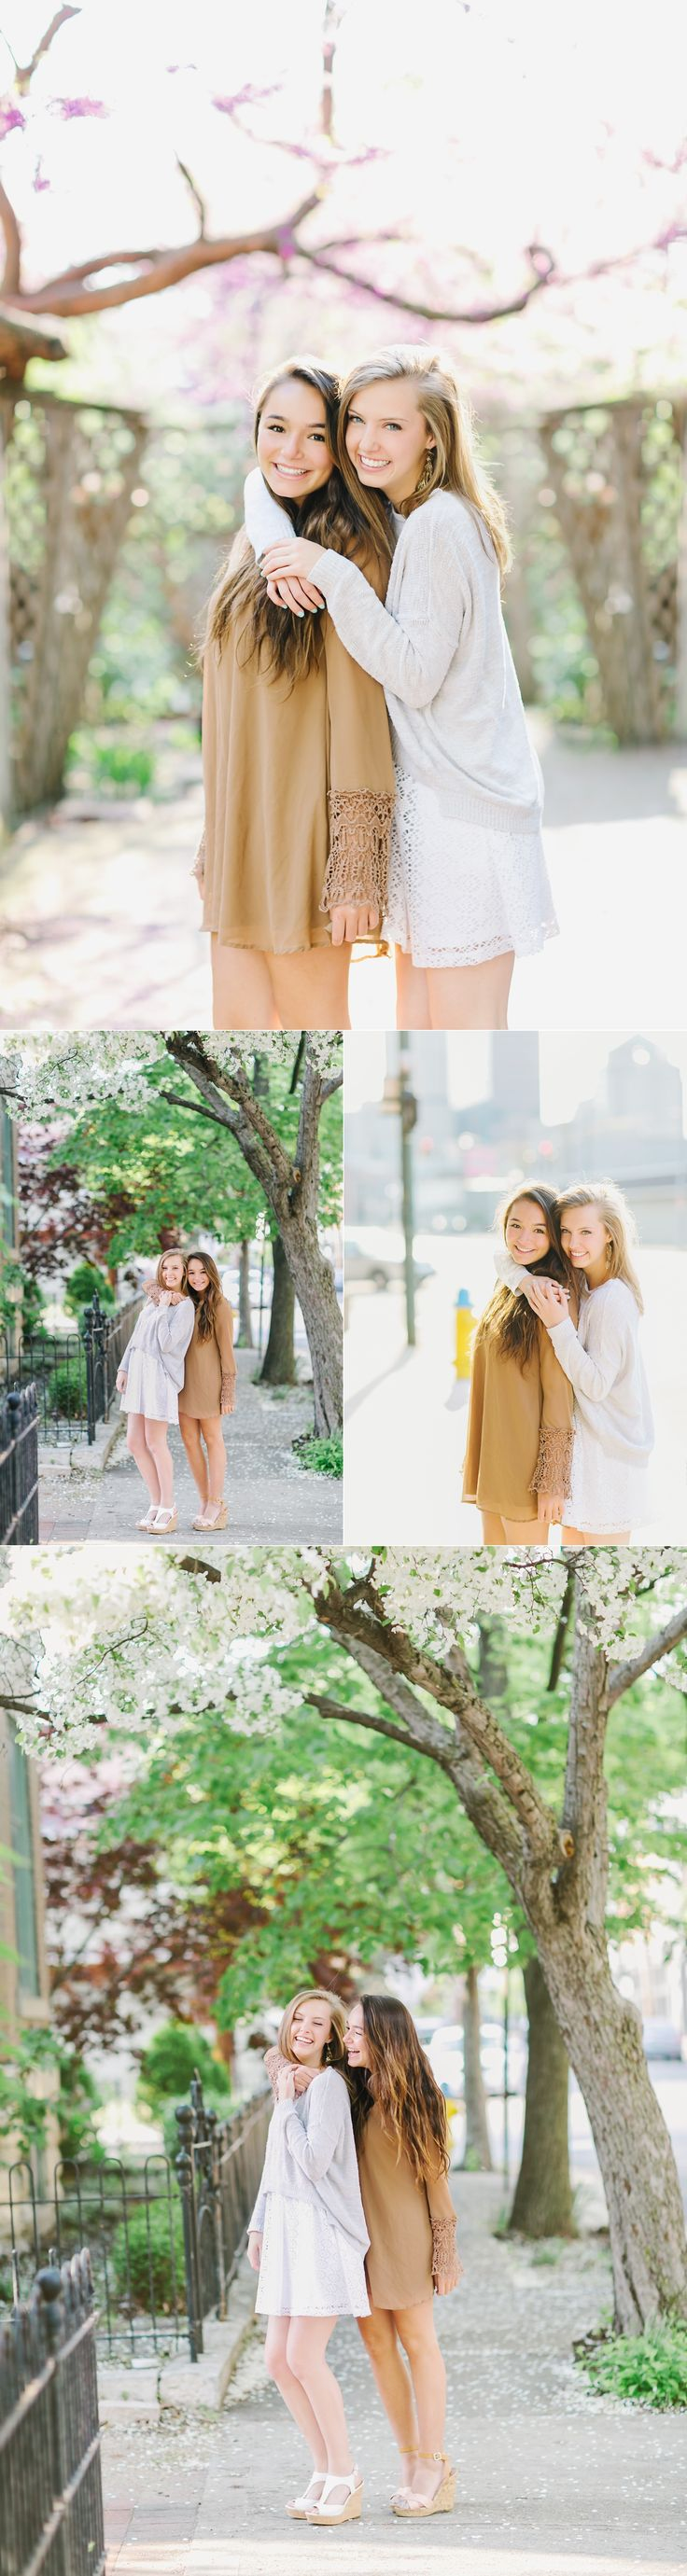 14 Best Friend Portraits Images On Pinterest Photos Larissa Green Dress Leux Studio Dayton Ohio Session Lux Senior Photography Http